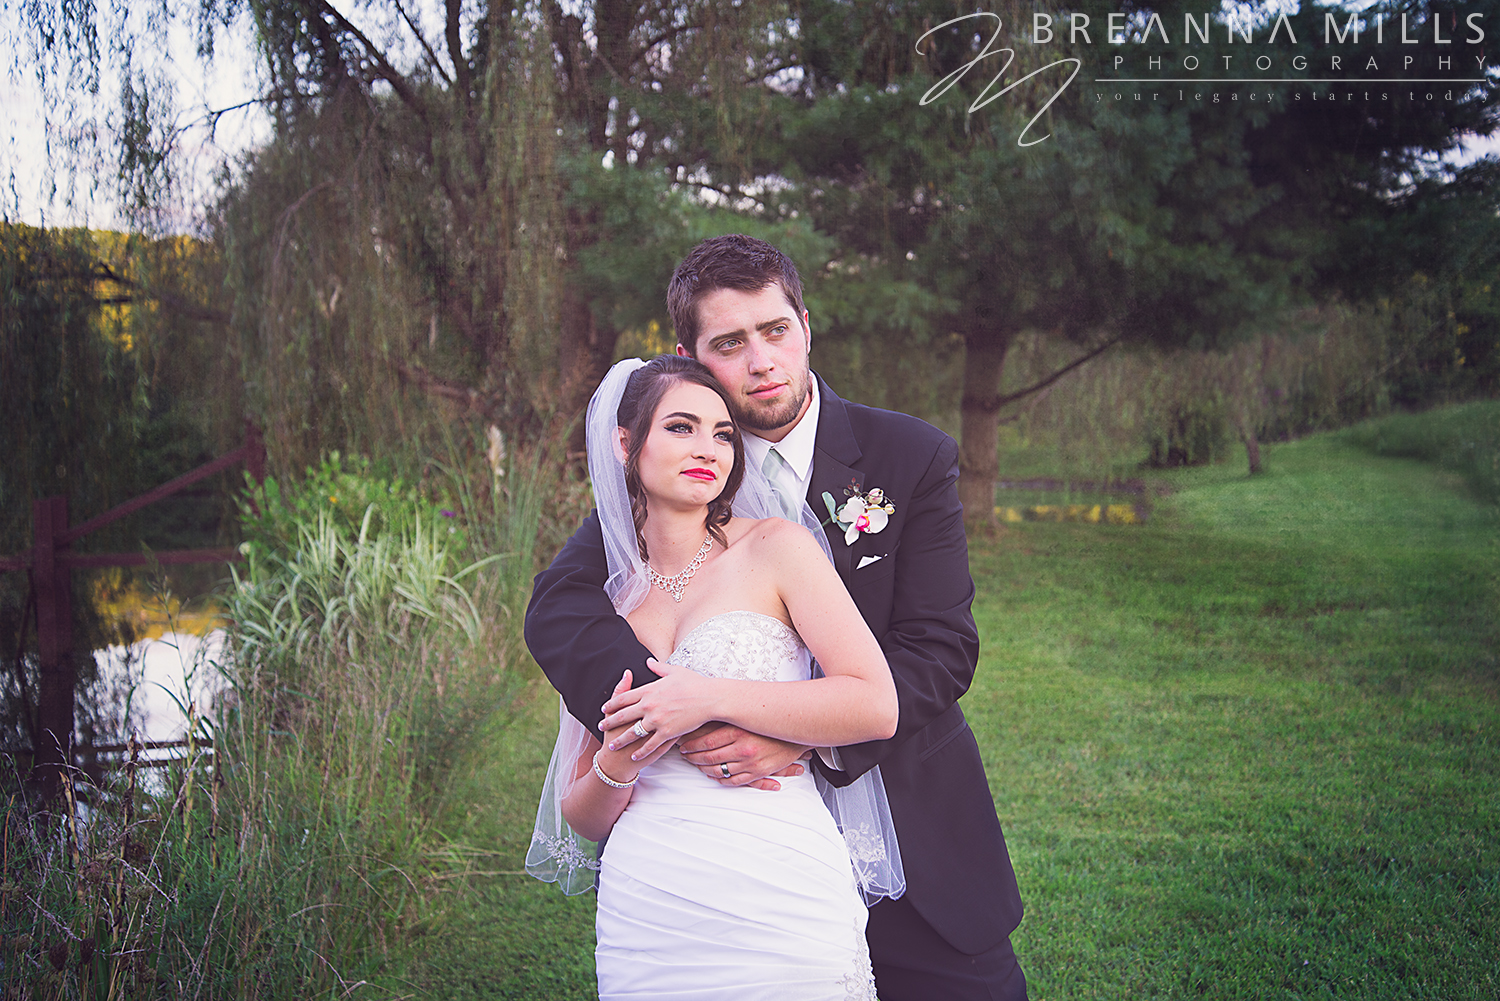 Johnson City wedding photographer, Breanna Mills Photography captures creative portraits at bride and groom's outdoor wedding at Storybrook Farm wedding venue.